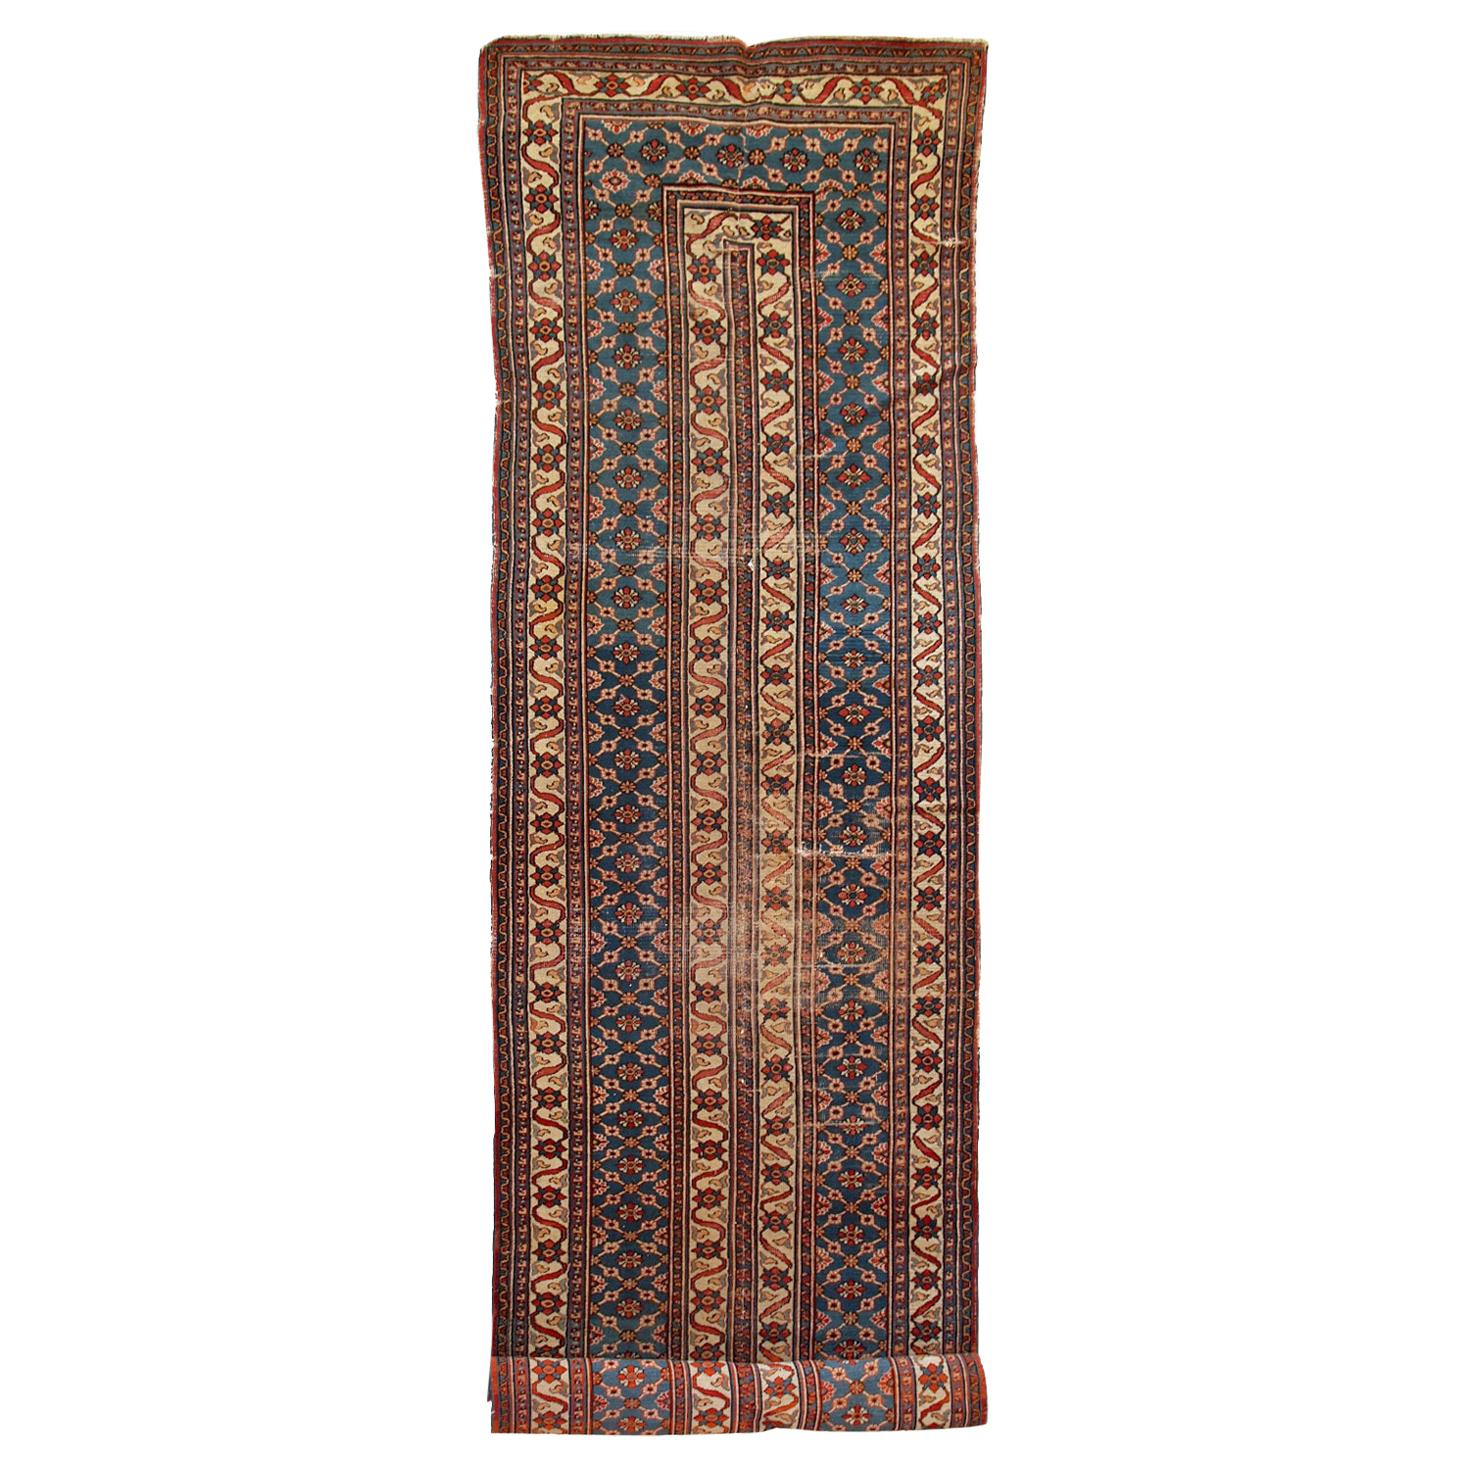 Handmade Antique Mashad Style Runner, 1900s, 1C587